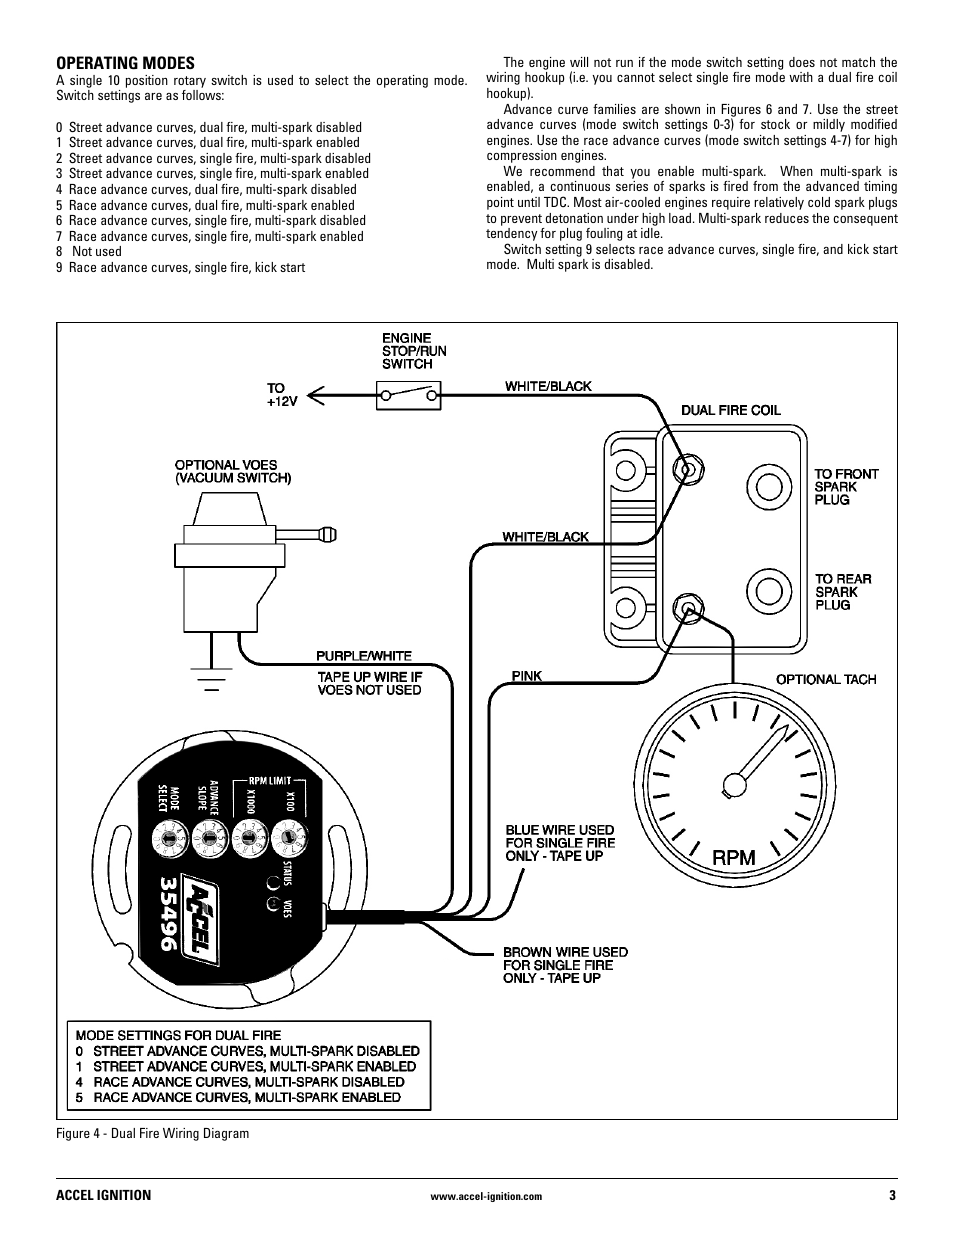 mallory ignition accel ignition 35496 page3 mallory ignition accel ignition 35496 user manual page 3 8 mallory ignition wiring diagram at crackthecode.co